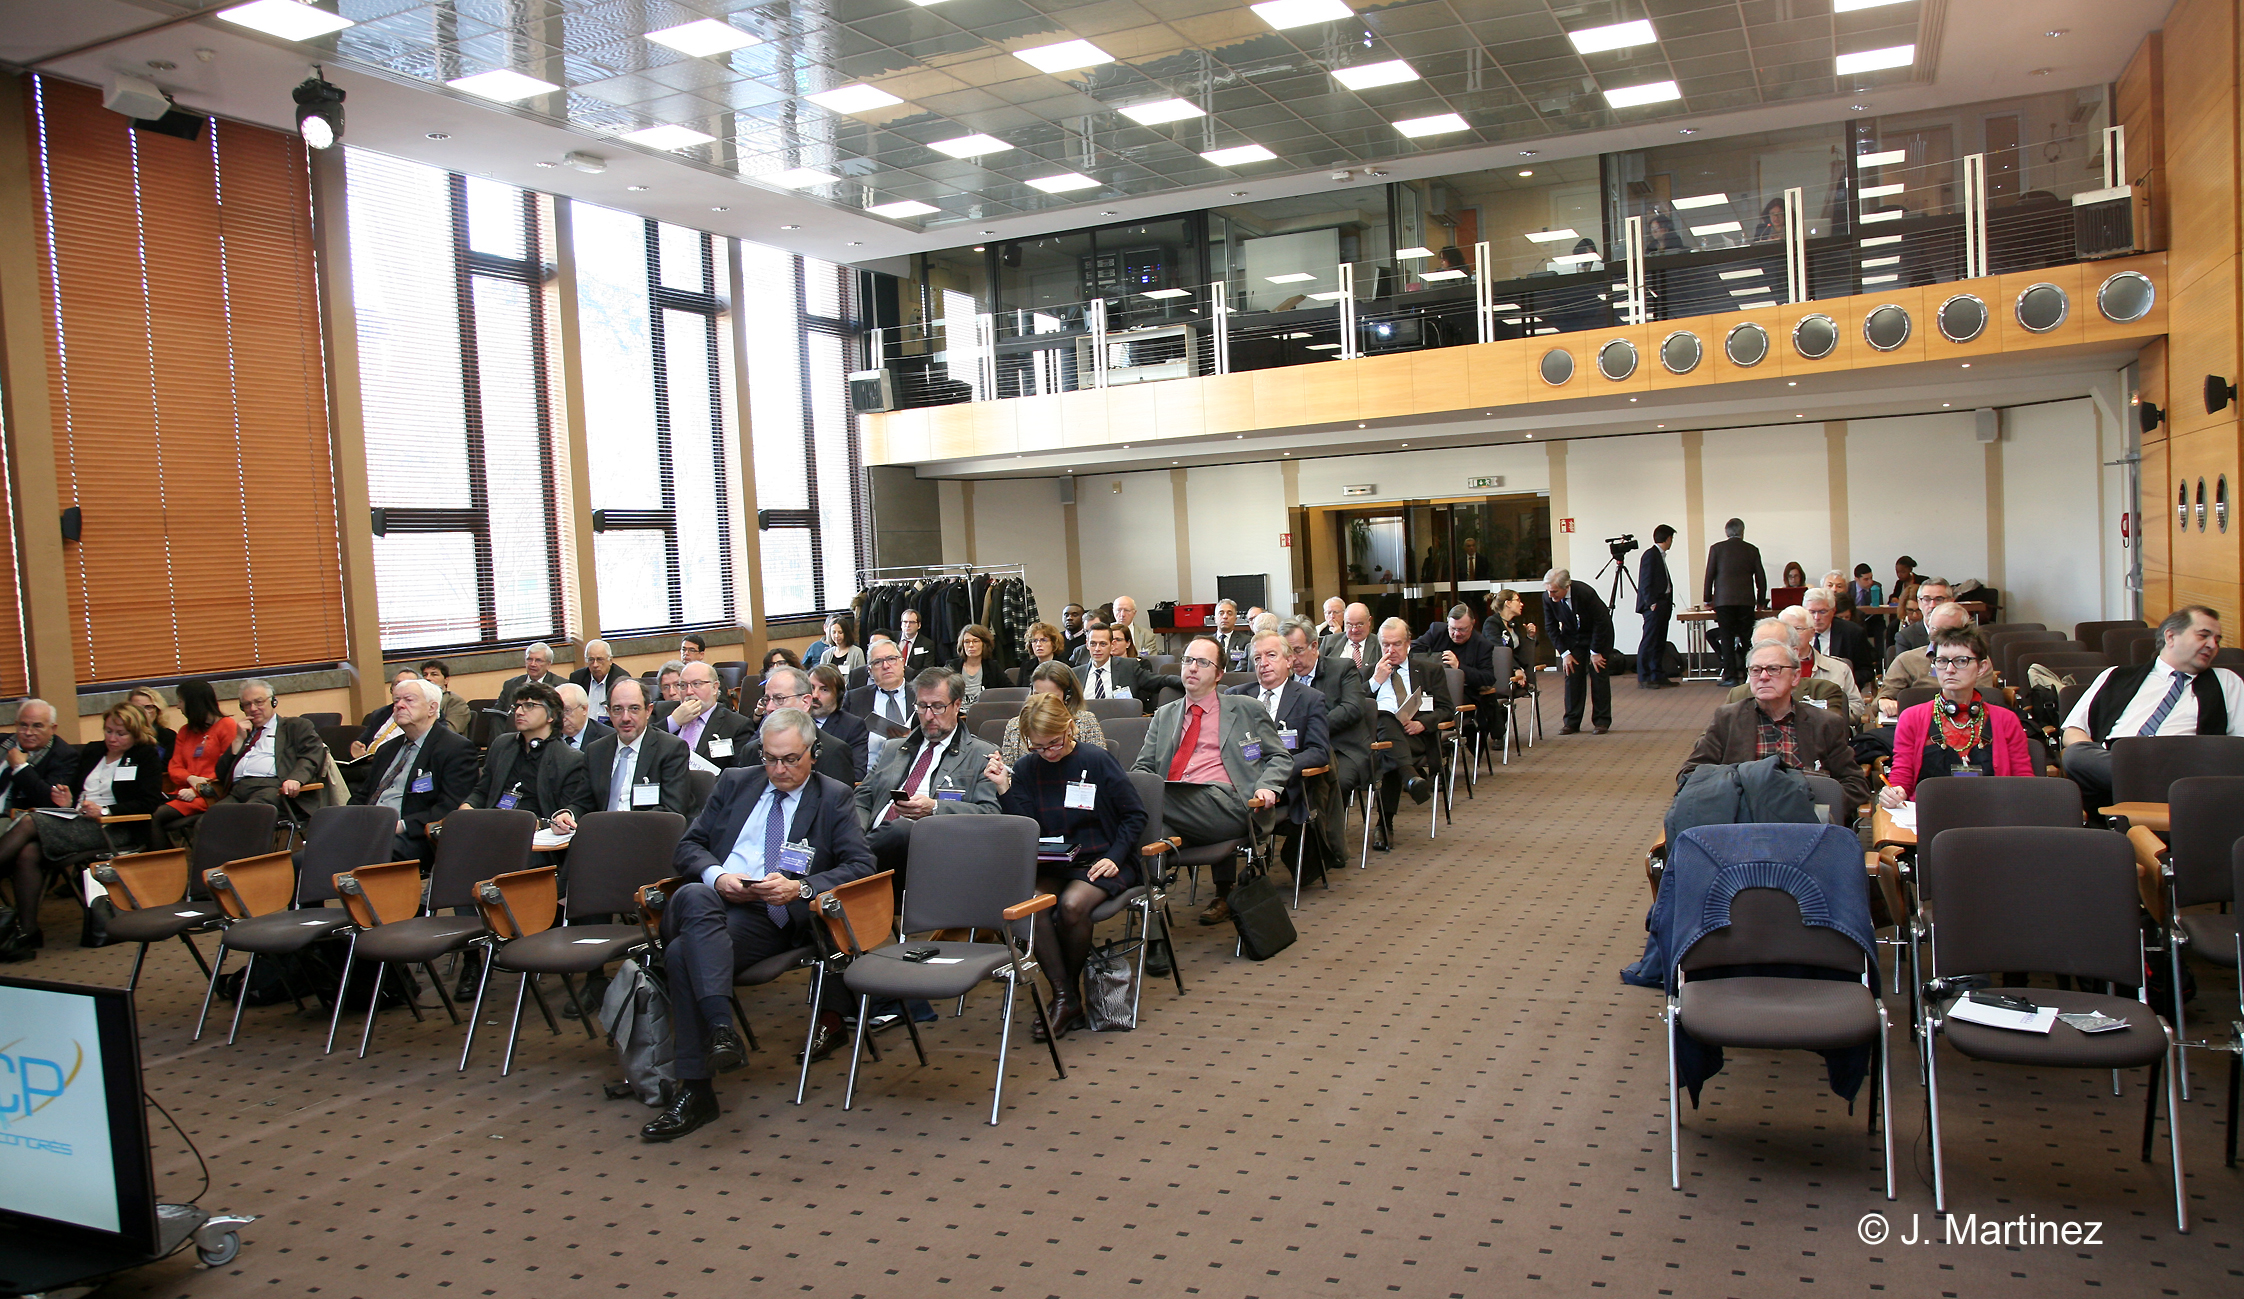 View of the conference audience